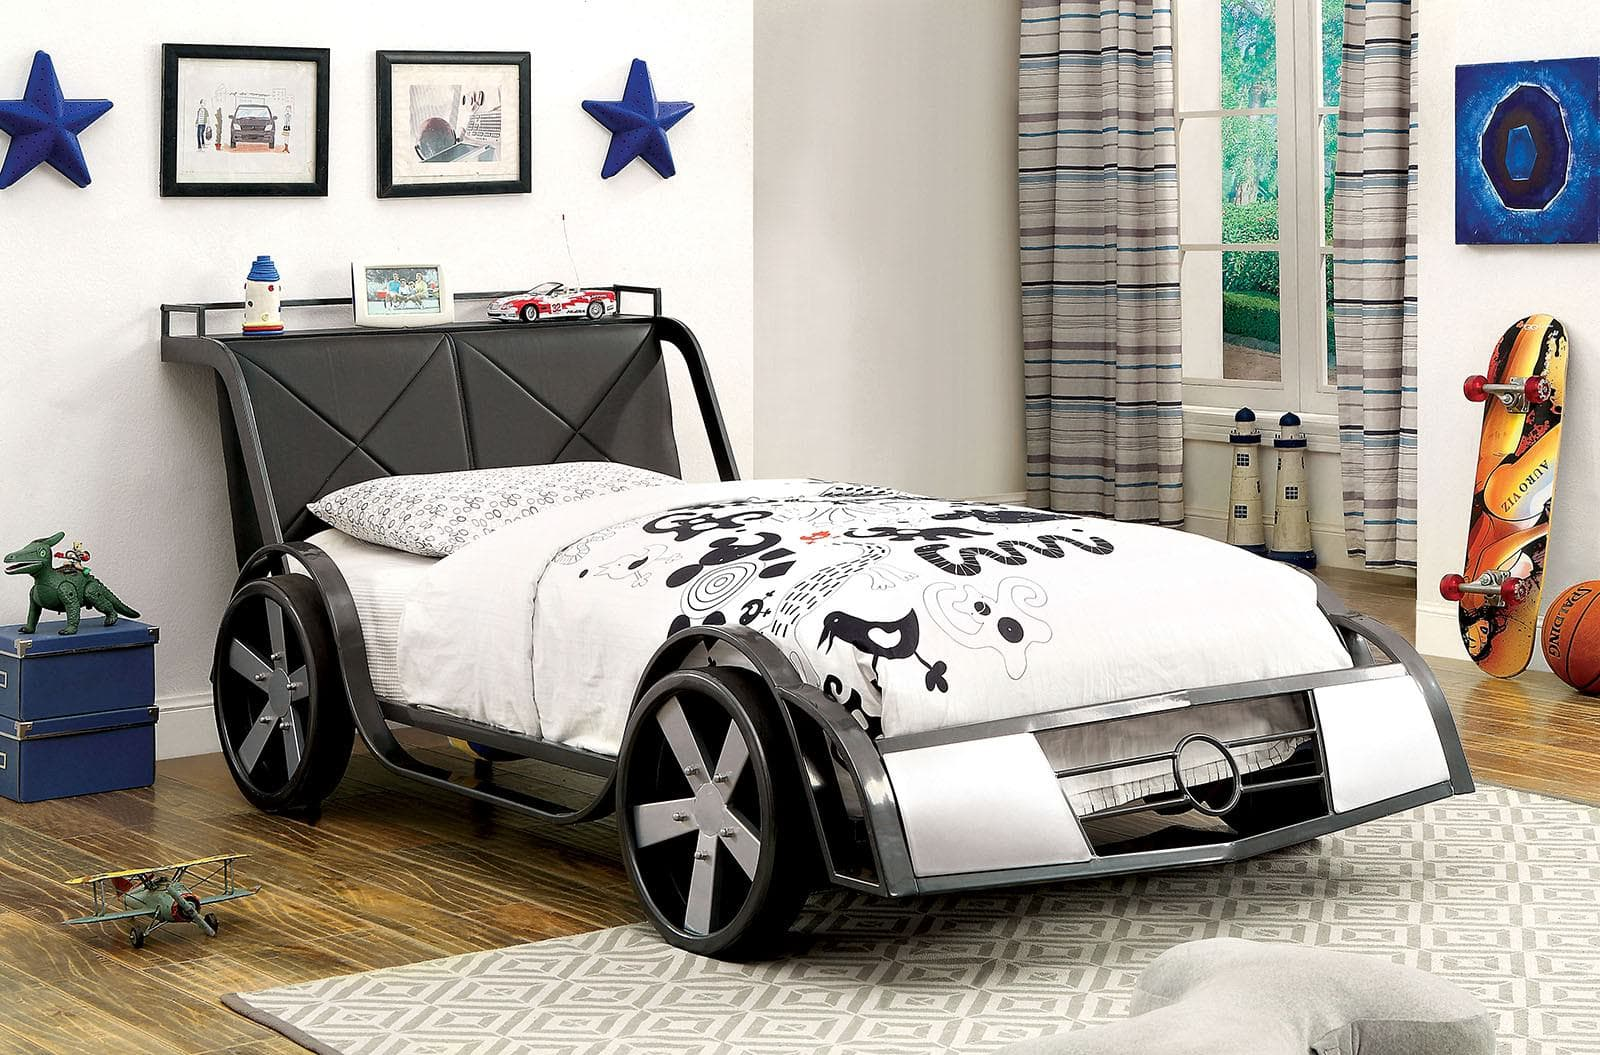 Car Beds for Children's Rooms: Bright Element of Interior Design. Sport car in white and dark colors